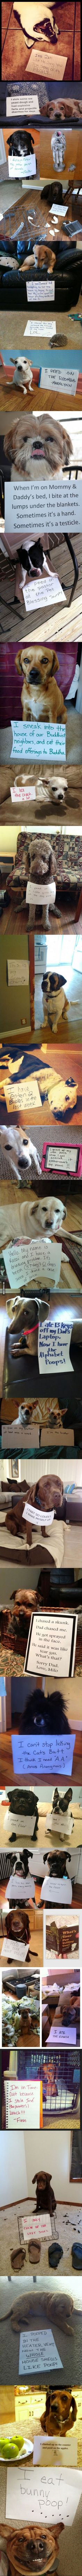 Dog shaming is hilarious